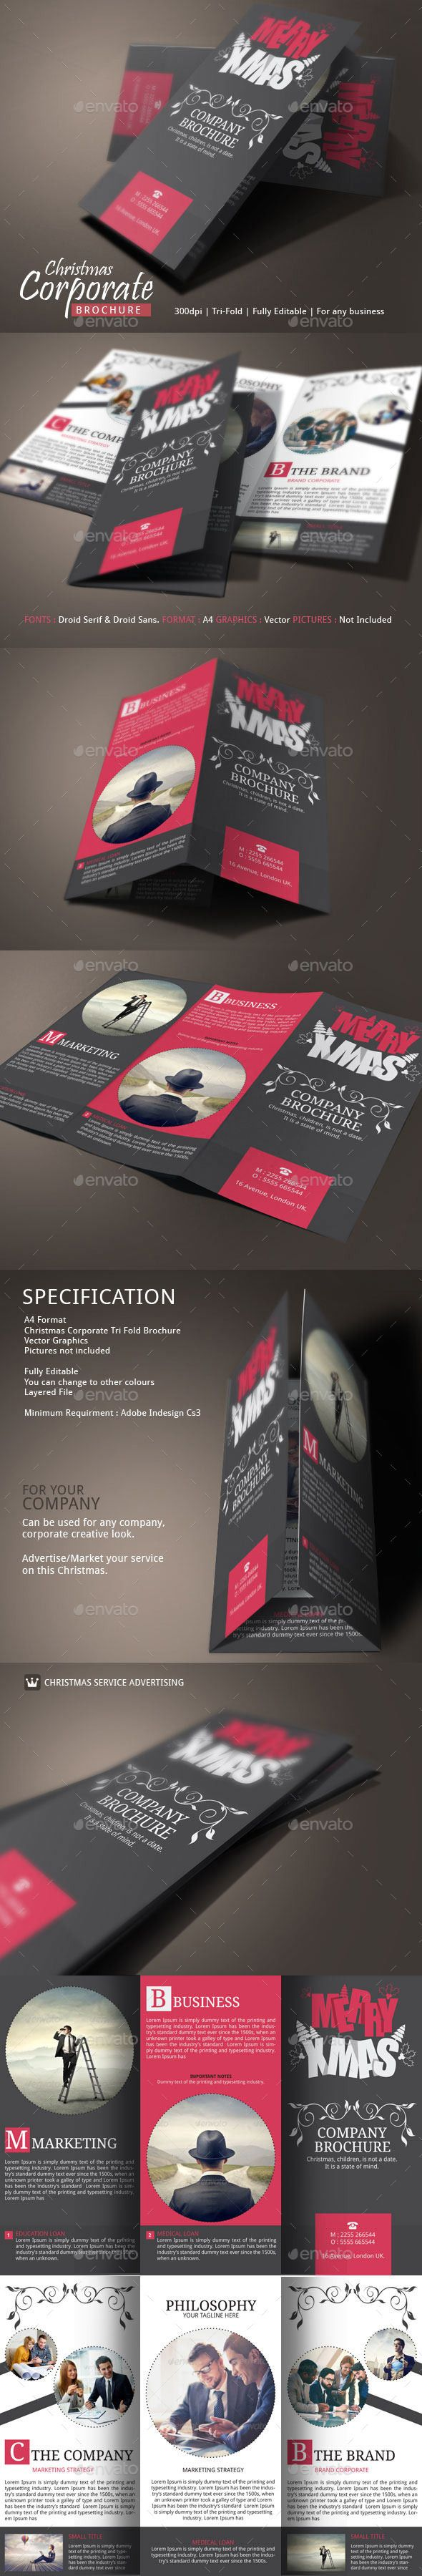 Christmas Brochure Examples - For corporate / Business use.  VIEW MORE HERE >> http://graphicriver.net/item/christmas-brochure-examples/9626612?ref=BloganKids